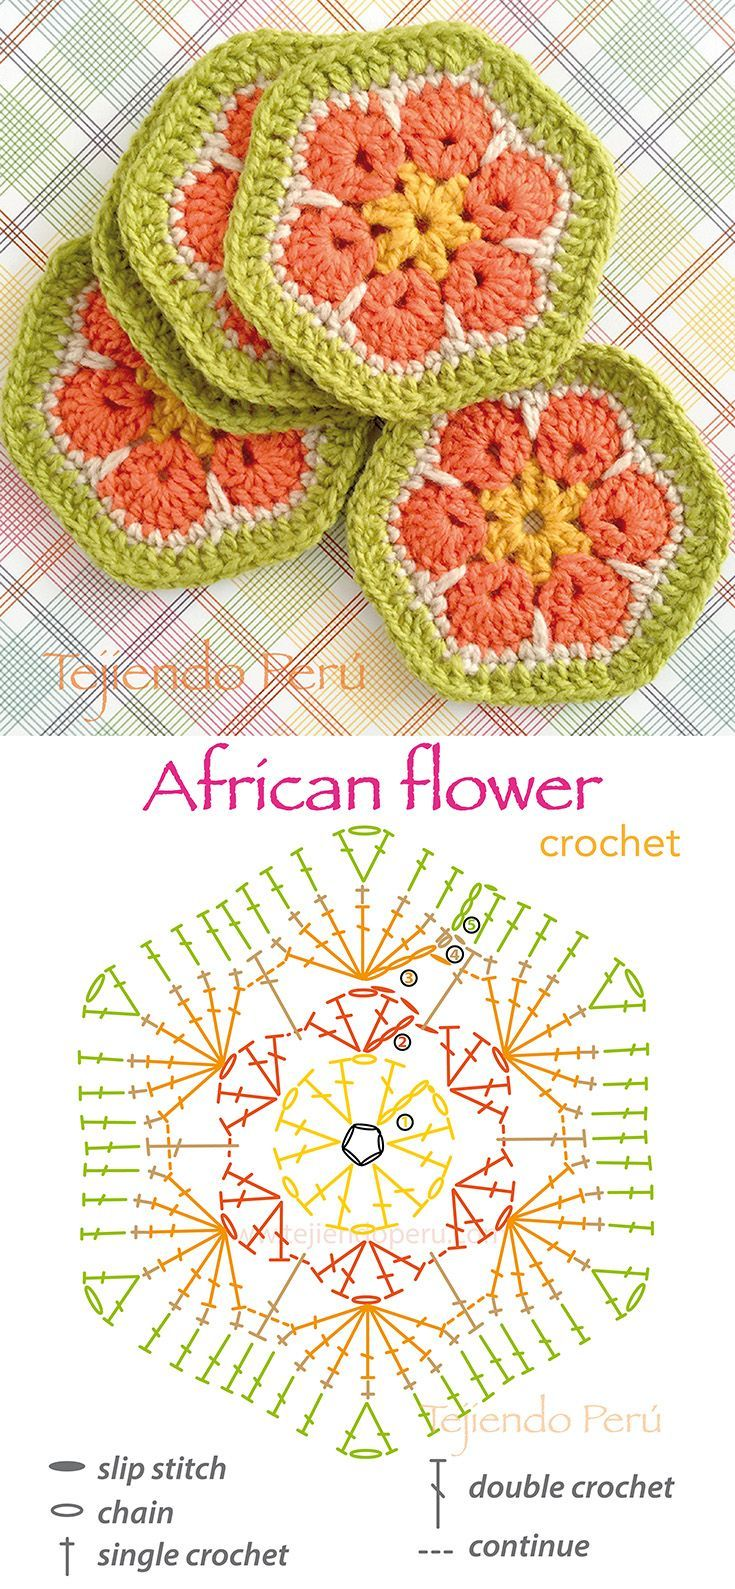 25+ Best Ideas about Crochet African Flowers on Pinterest ...